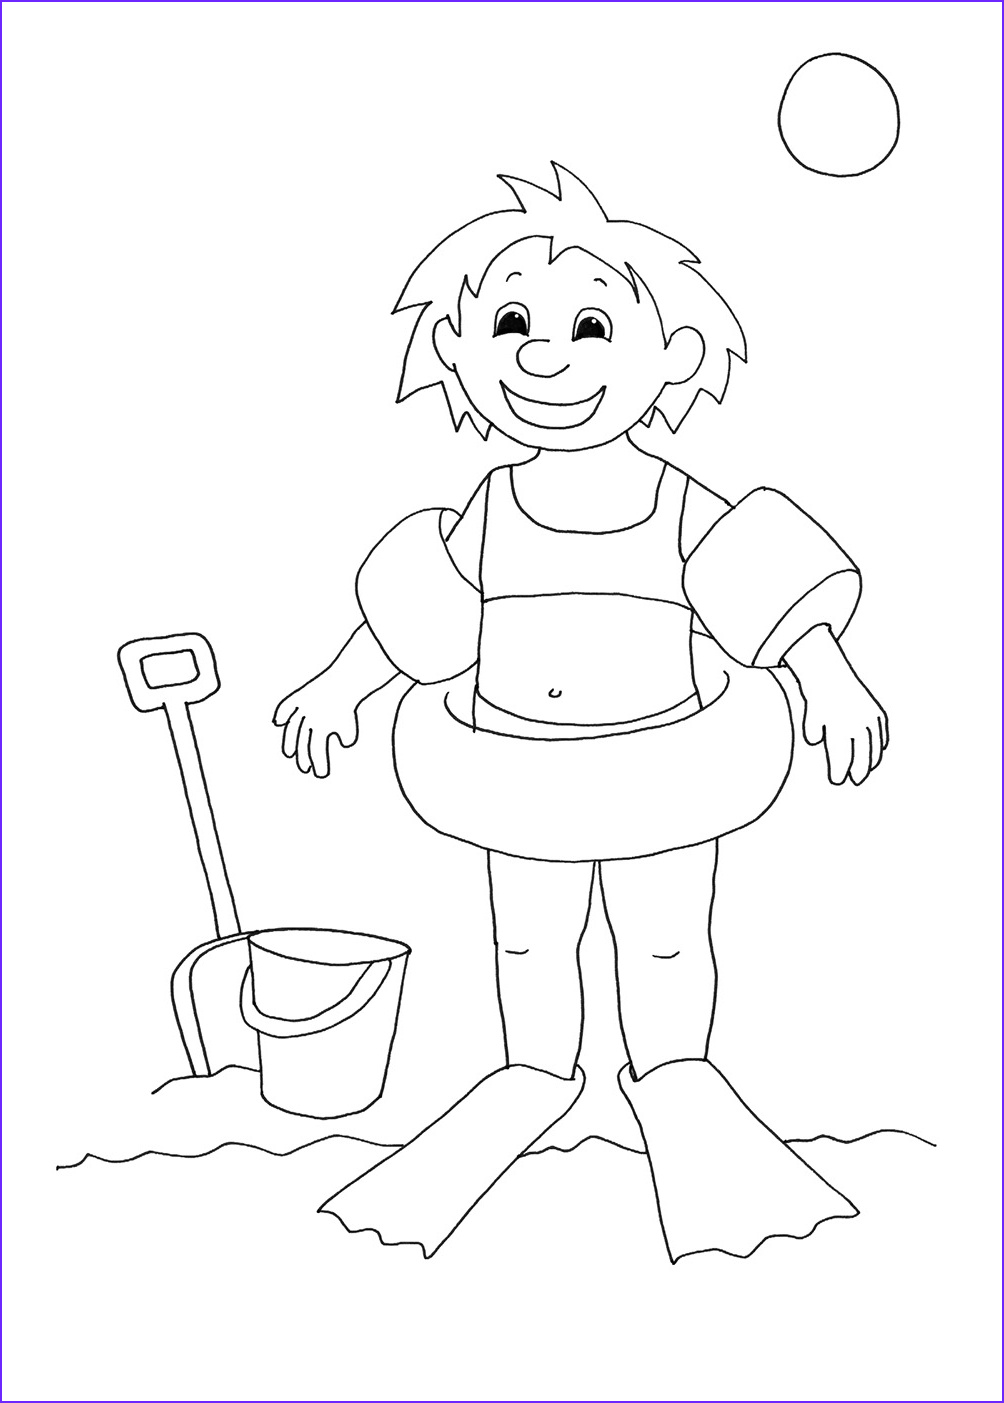 Childrens Printable Coloring Pages Luxury Photos Summer Coloring Pages for Kids Print them All for Free